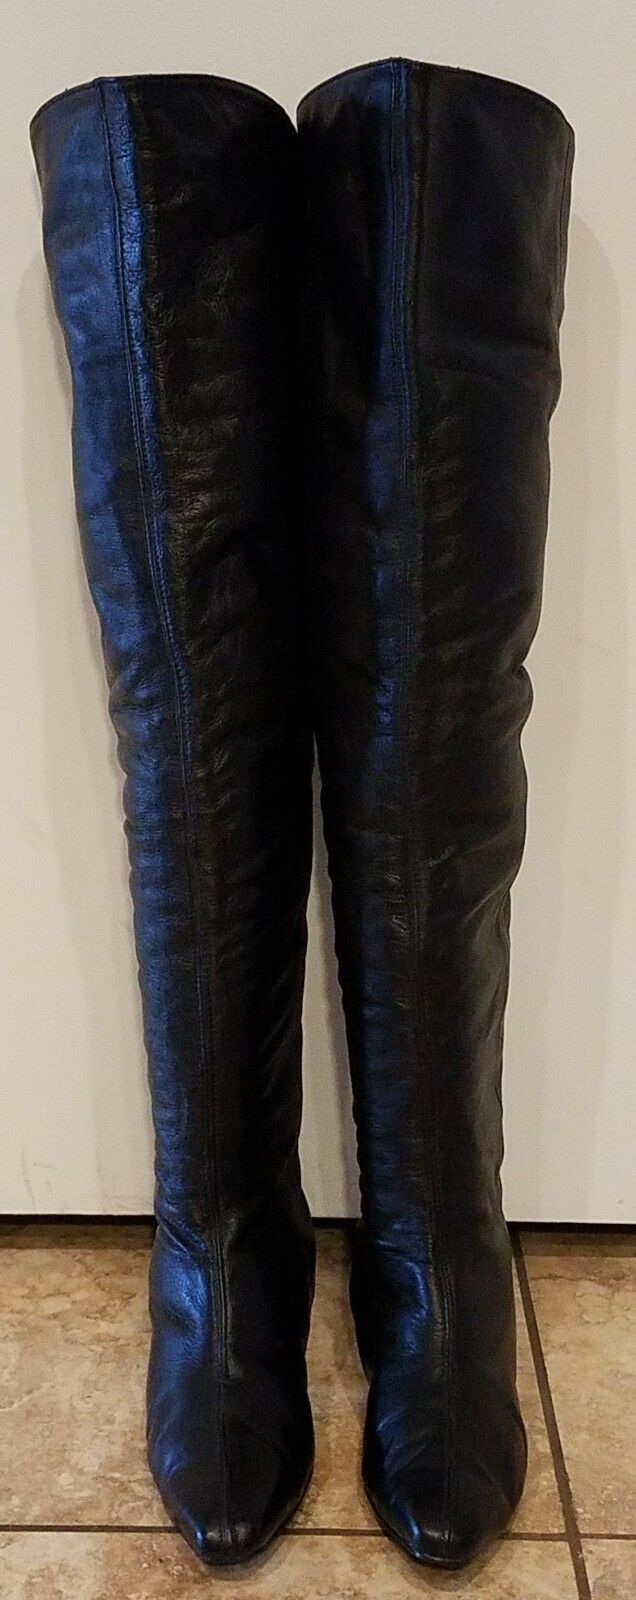 OTK OVER THE KNEE KNEE KNEE WOMAN LACE UP GO GO BOOTS VINTAGE LEATHER TWO LIPS SIZE 6 b7b961